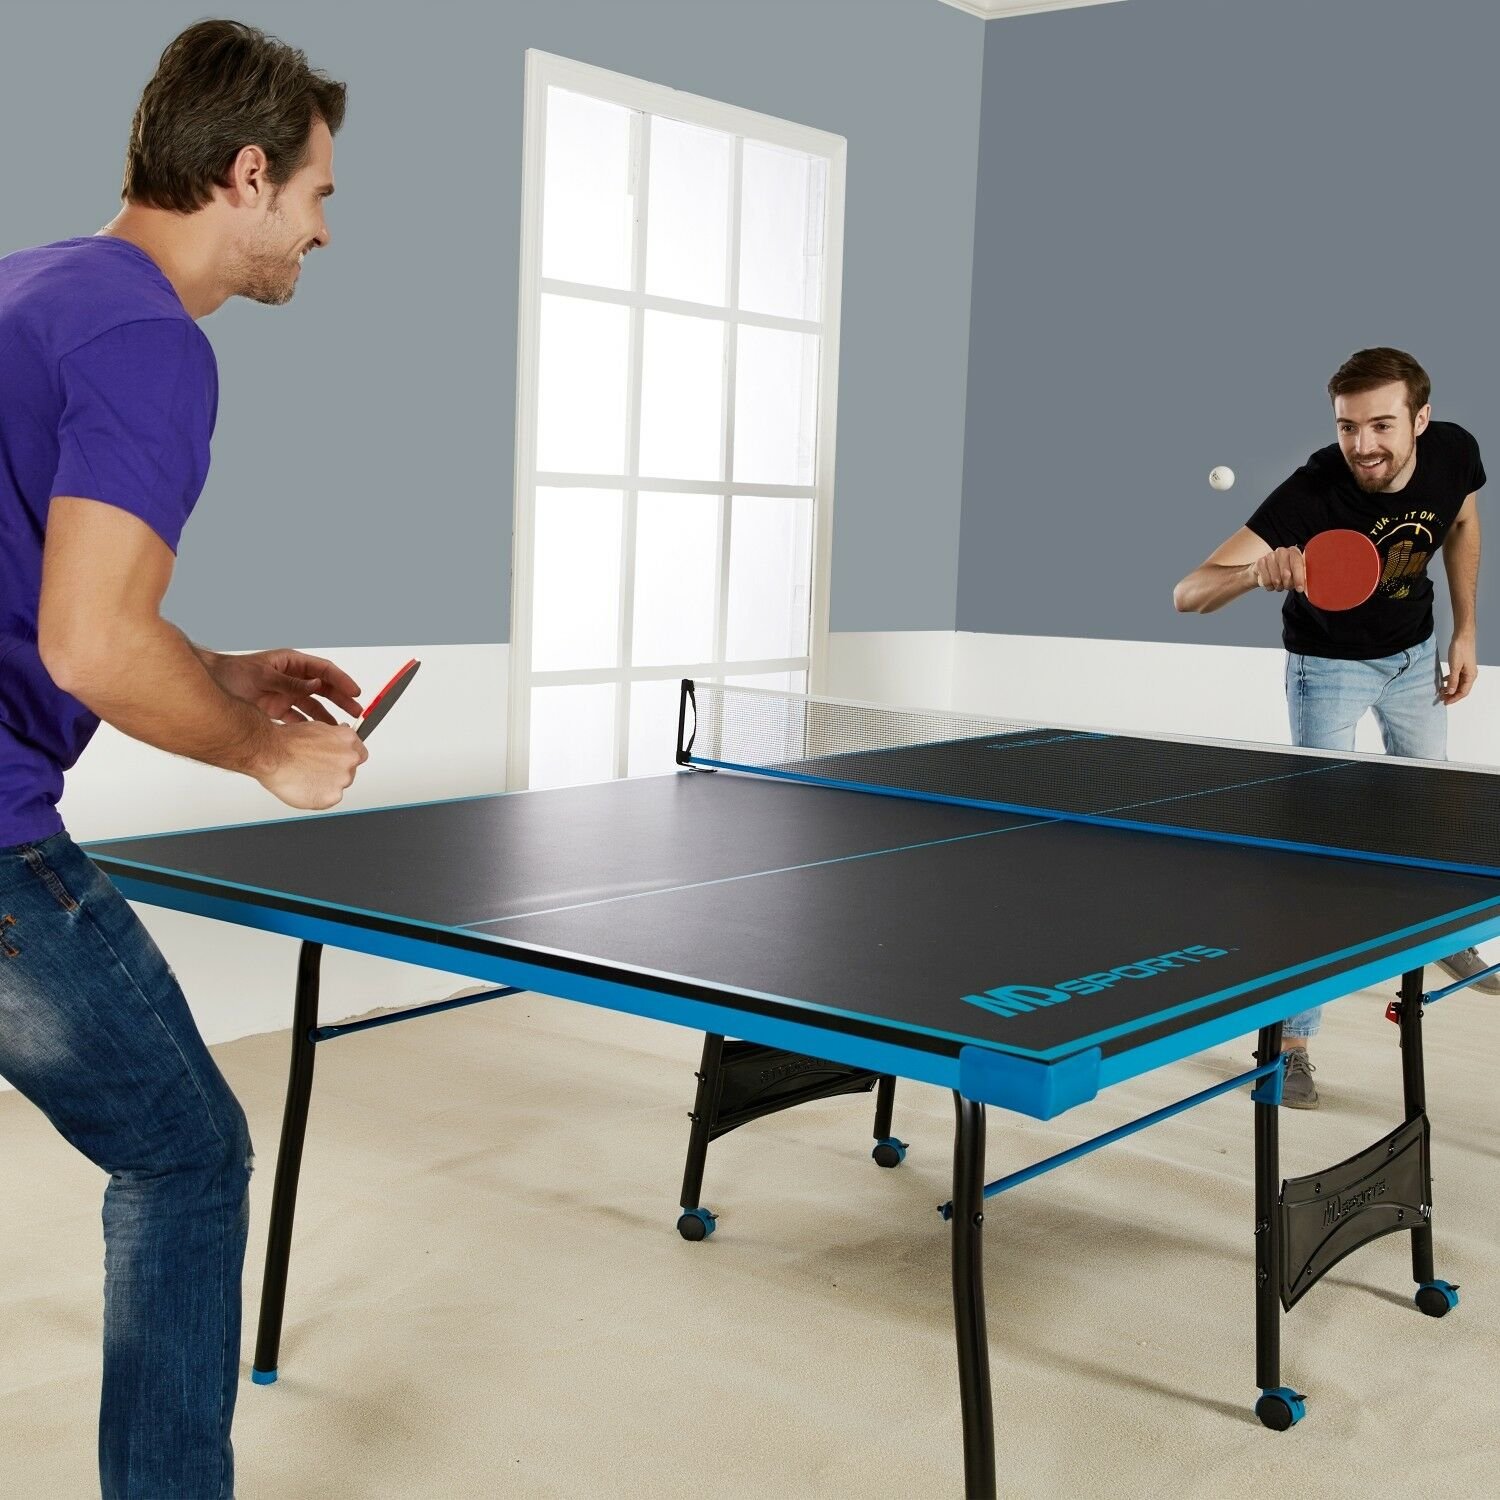 Ping Pong Table Tennis Black Blue Official Size Sports Indoor Game Fold Up  Table 1 Of 10FREE Shipping See More